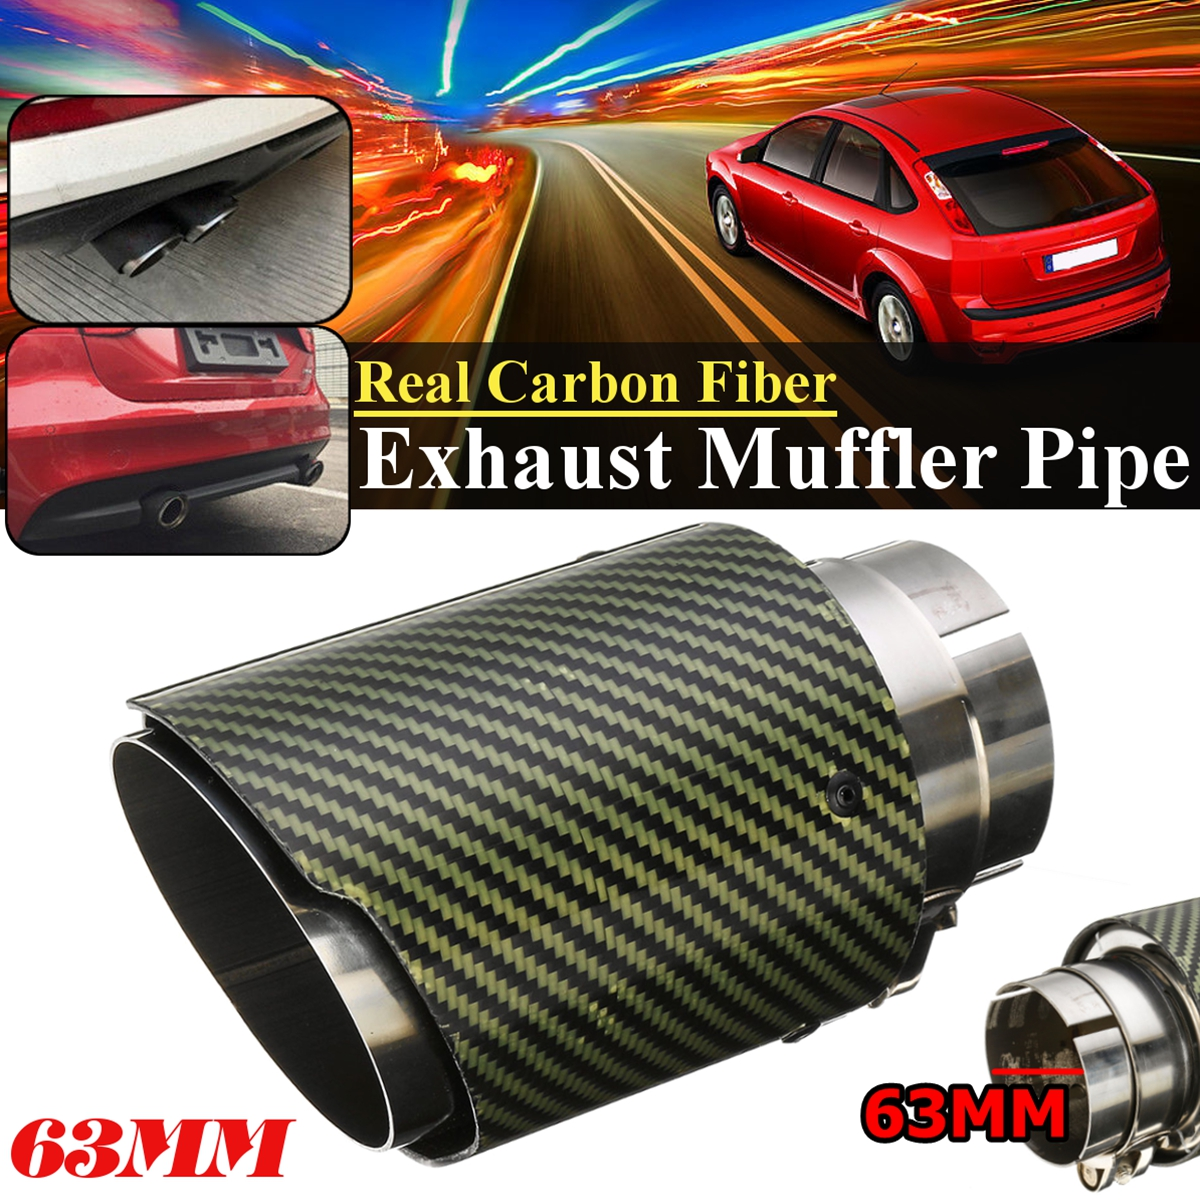 1x Real Carbon Fiber Auto Car Exhaust Pipe Tail Muffler End Tip 63mm In-89mm Out